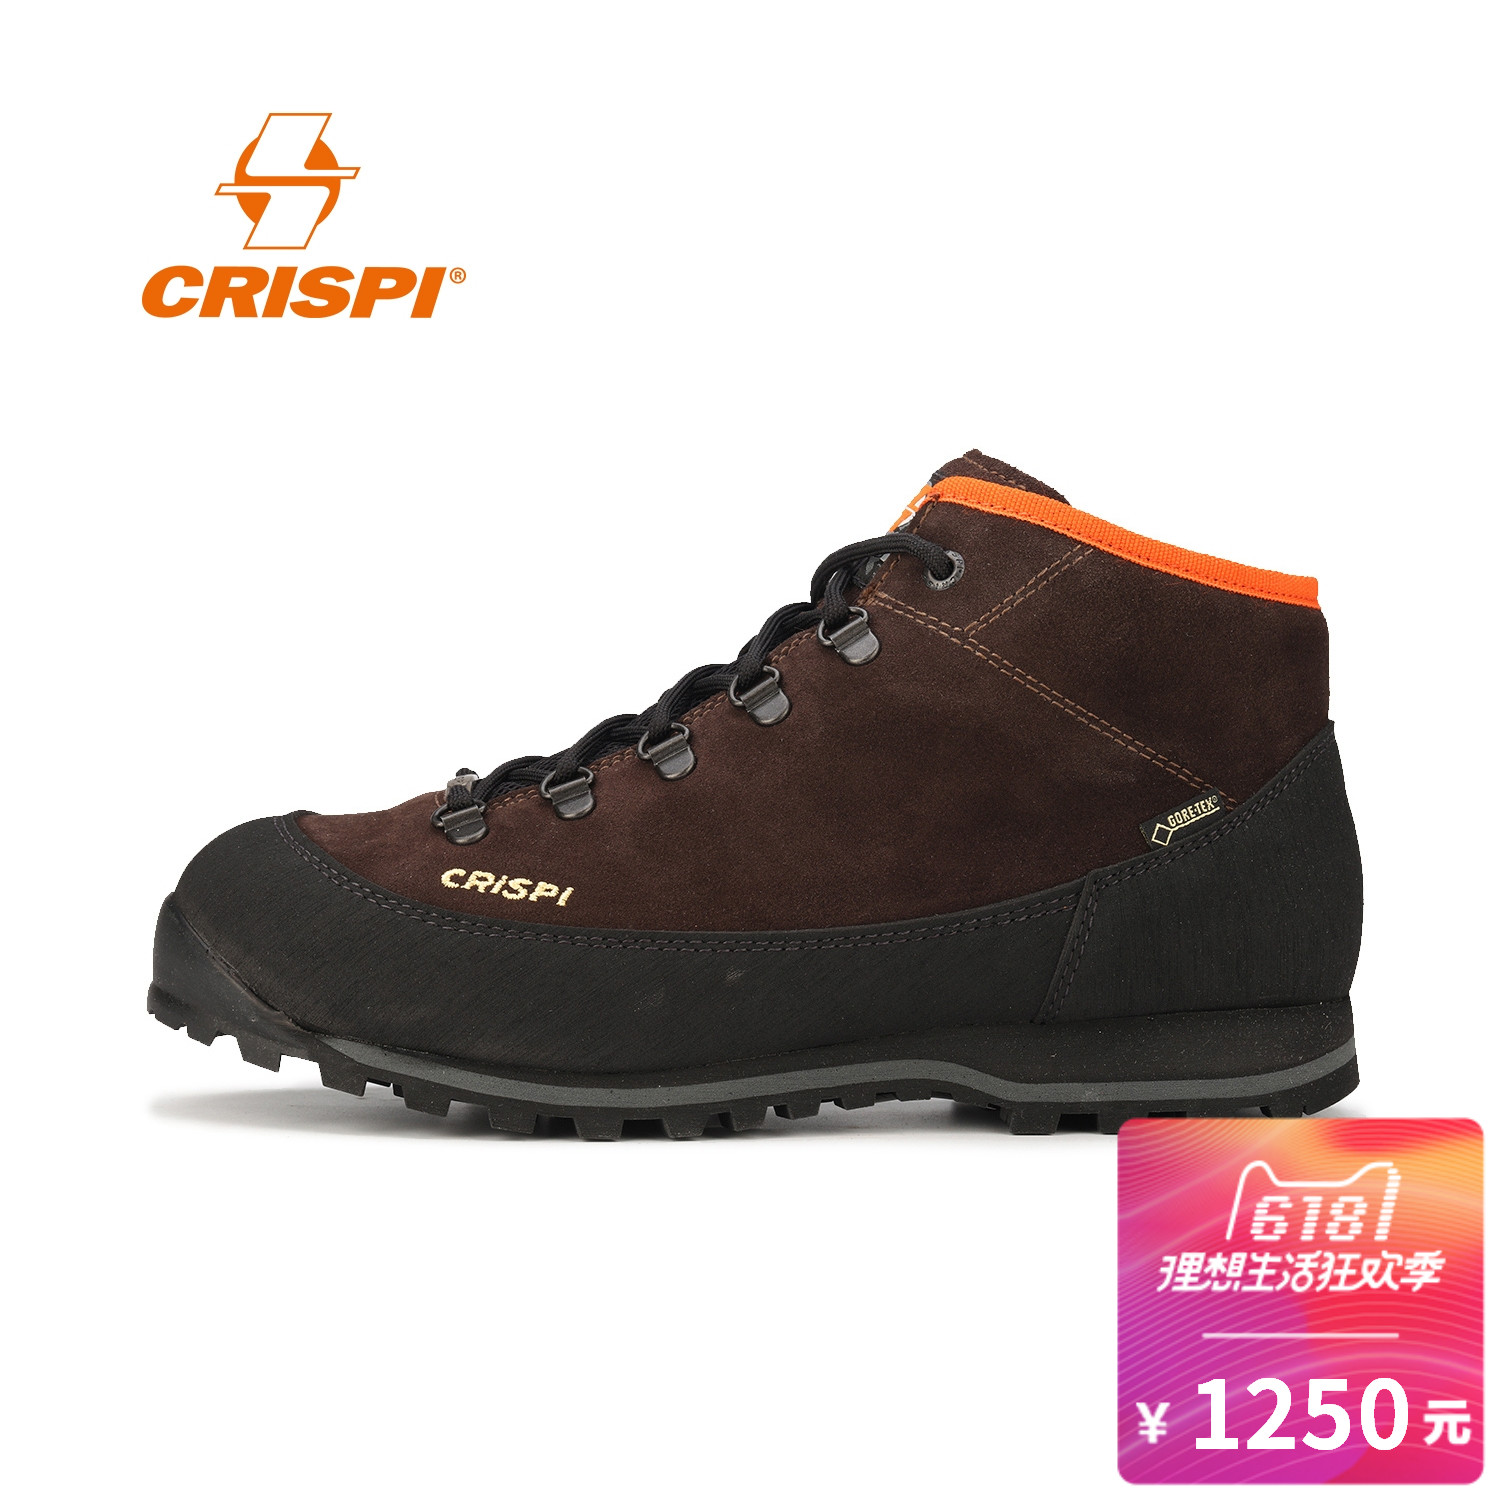 CRISPI outdoor hiking shoes for men and women GORE-TEX waterproof breathable vibram bottom wear-resistant walking shoes